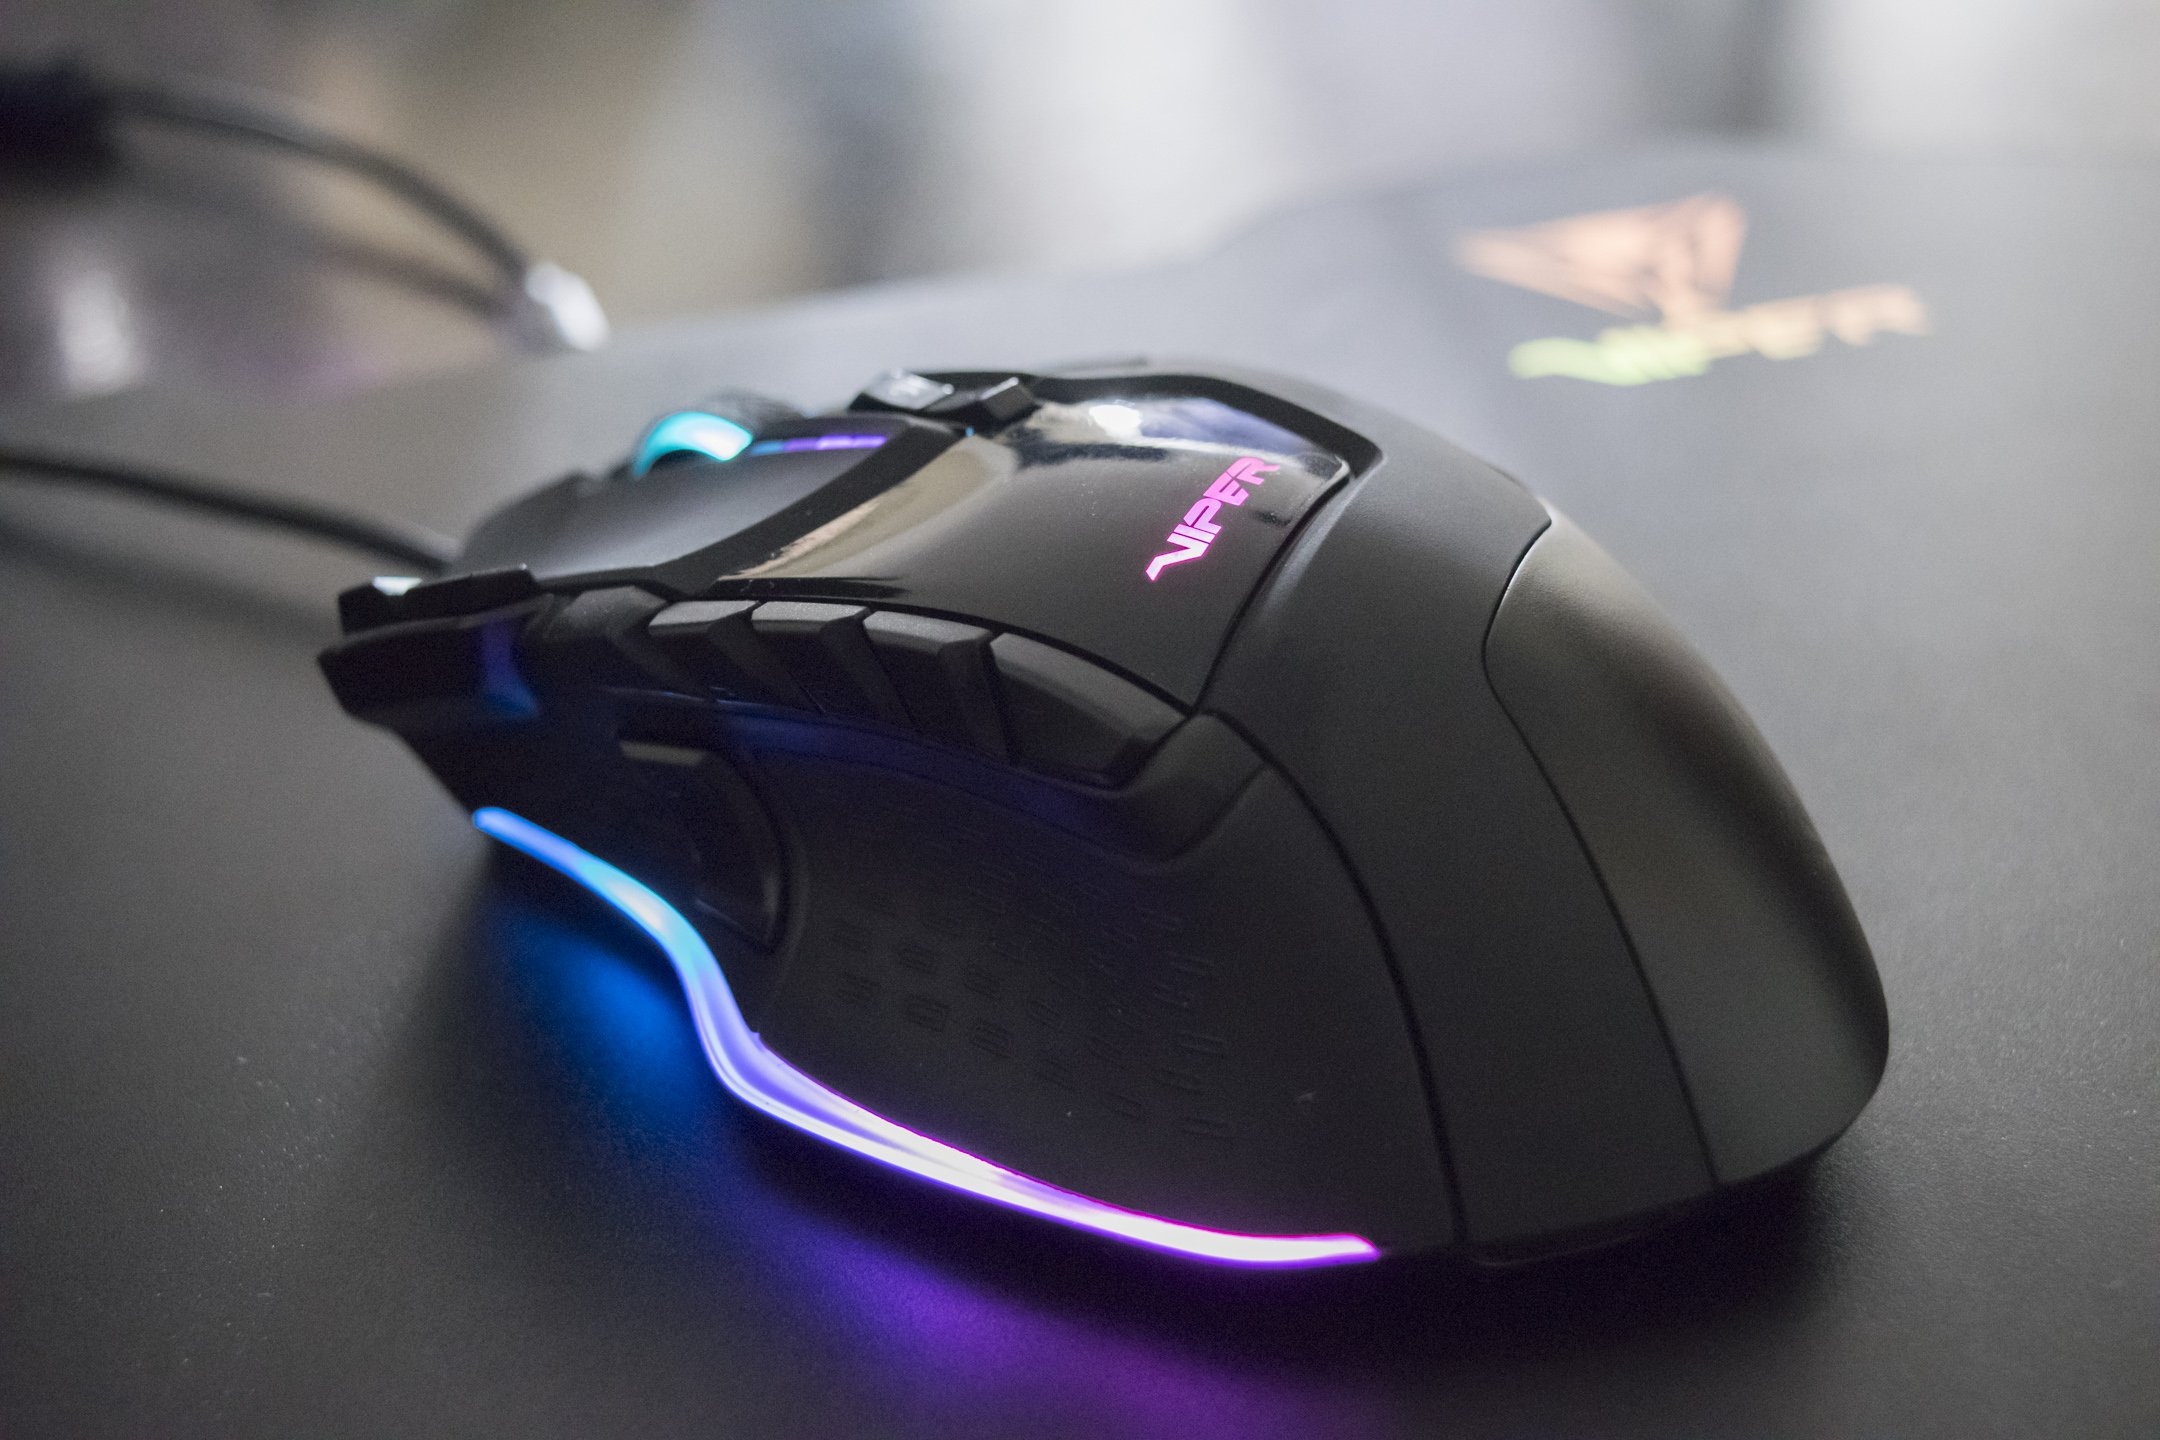 Best Gaming Mouse 2020 - Viper Gaming V570 Blackout Edition